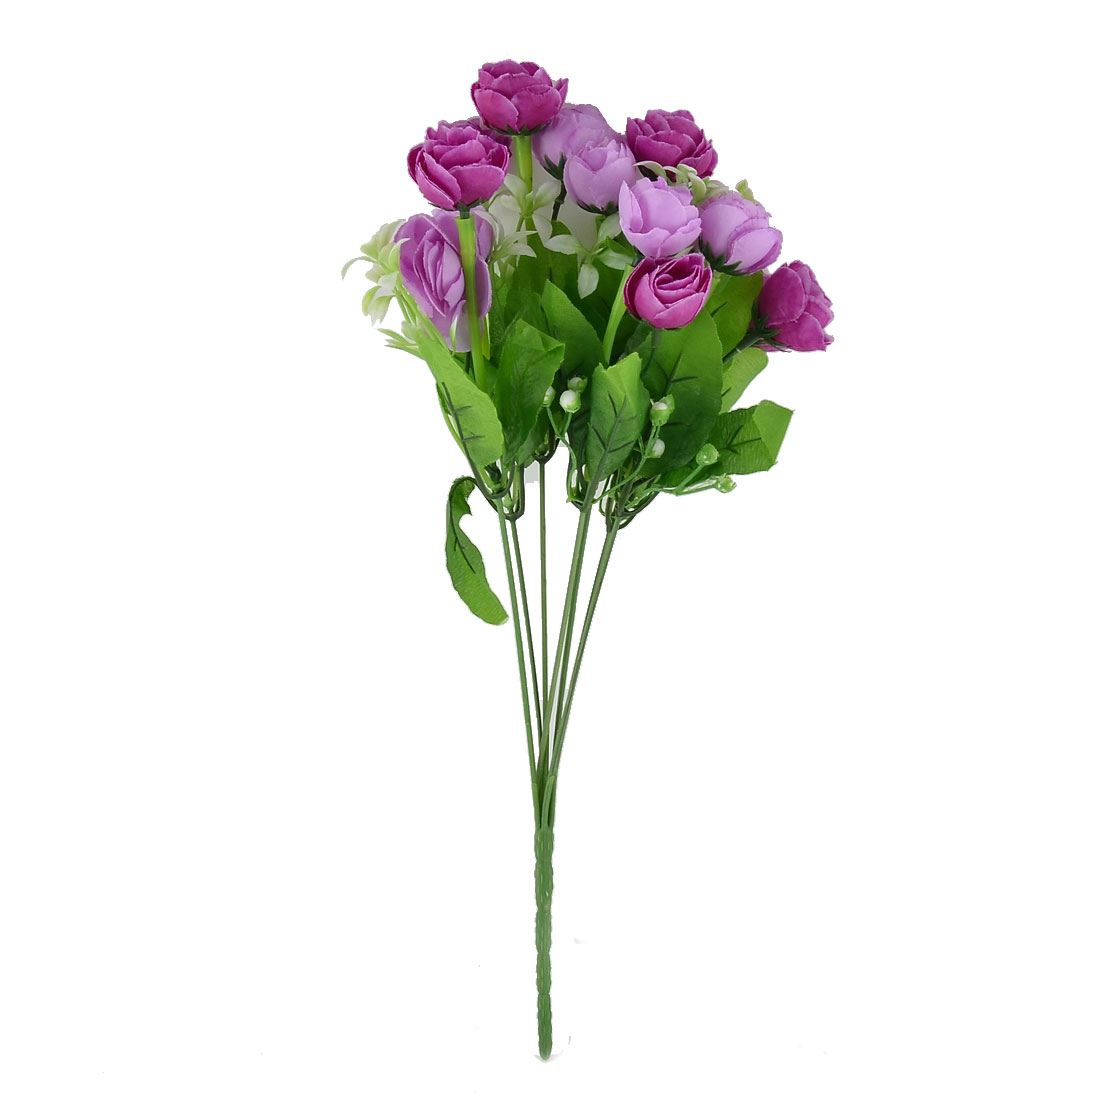 Artificial Emulational Flower Bouquet Bedroom Dormitory Decoration Purple White